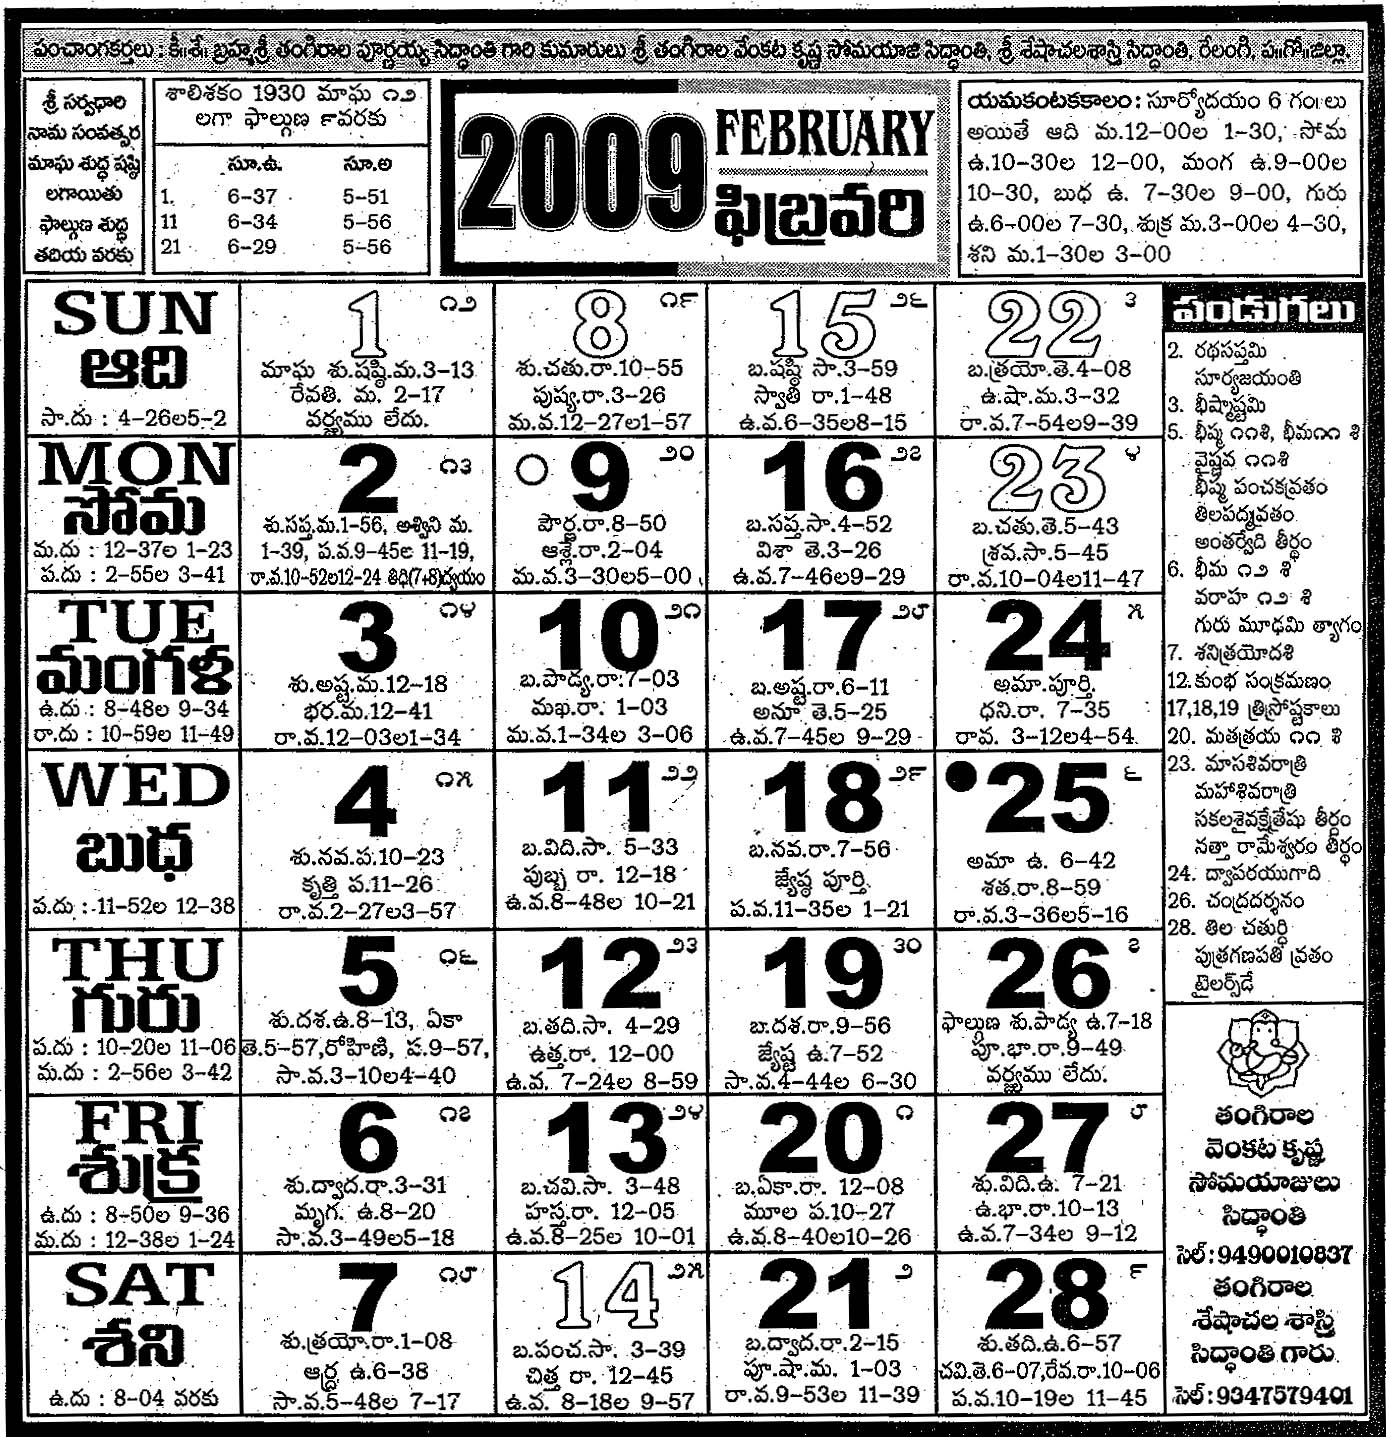 Telugu (తెలుగు) Calendar 2009 | ✍Pedia within Hindu Calendar 2009 With Tithi